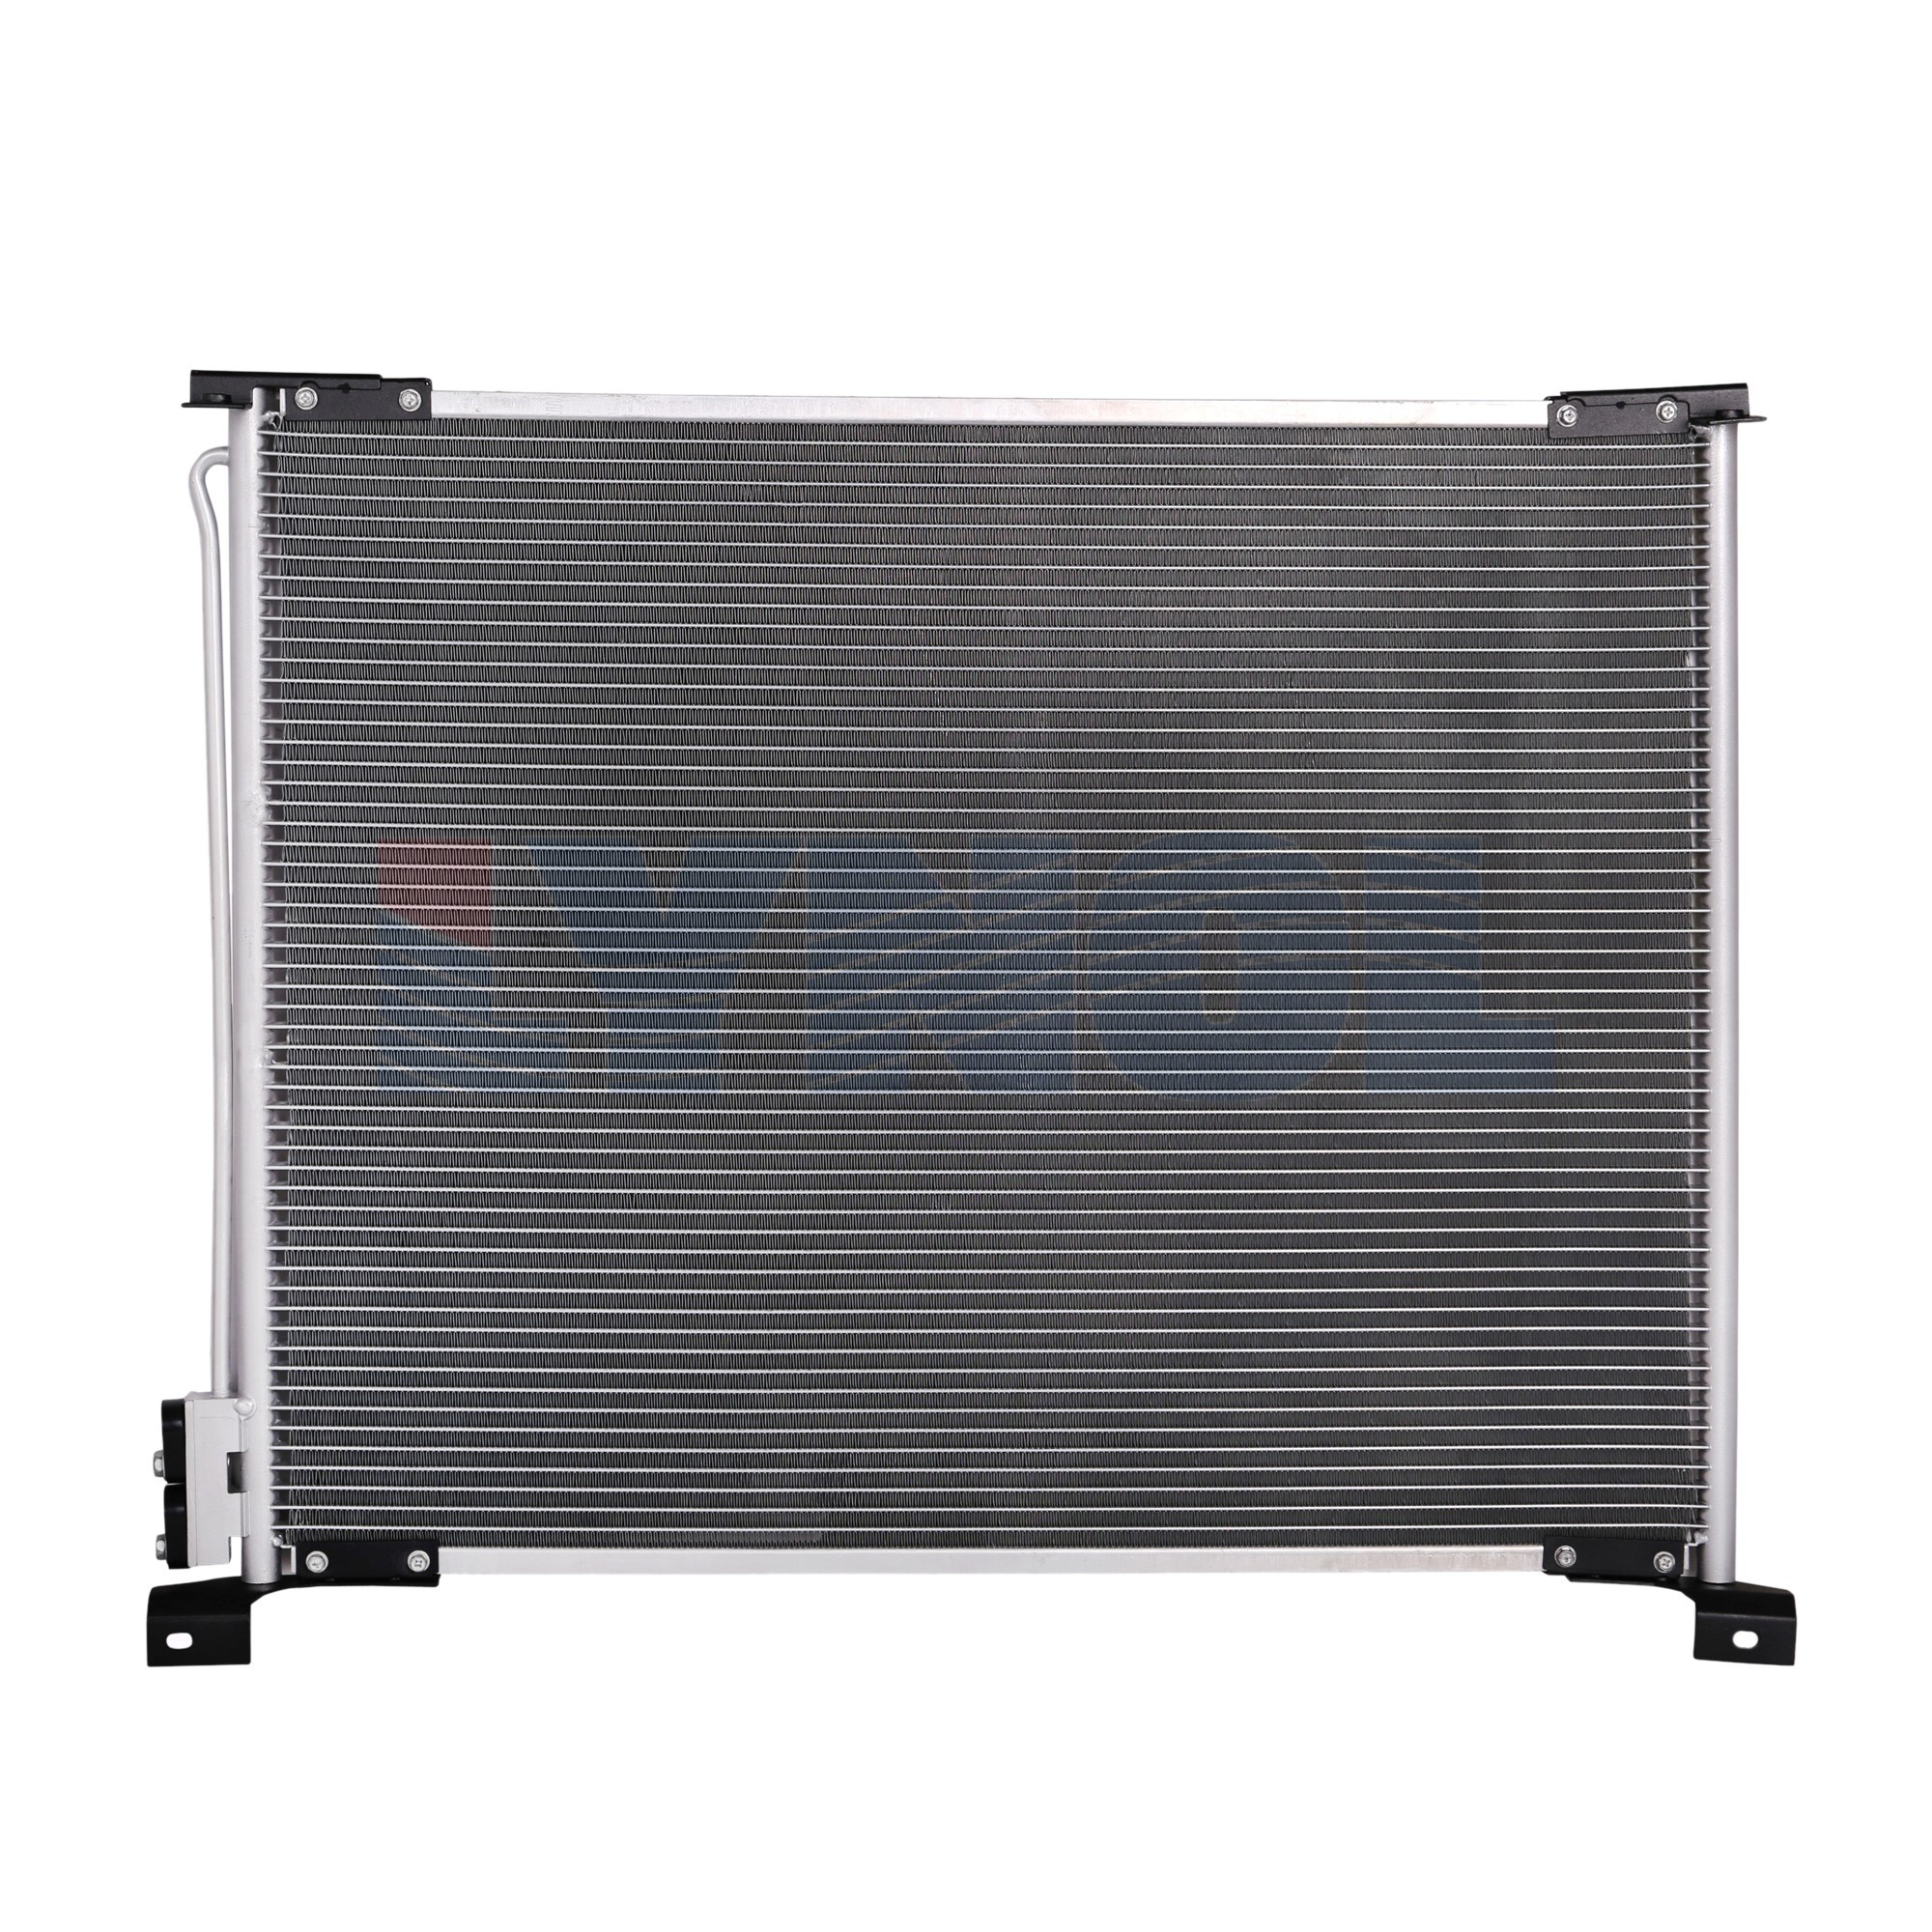 AC3011 - AC Condensers  - AC Condensers for 04-10 Ford E-350 E-450 Super Duty, E-350 Club Wagon